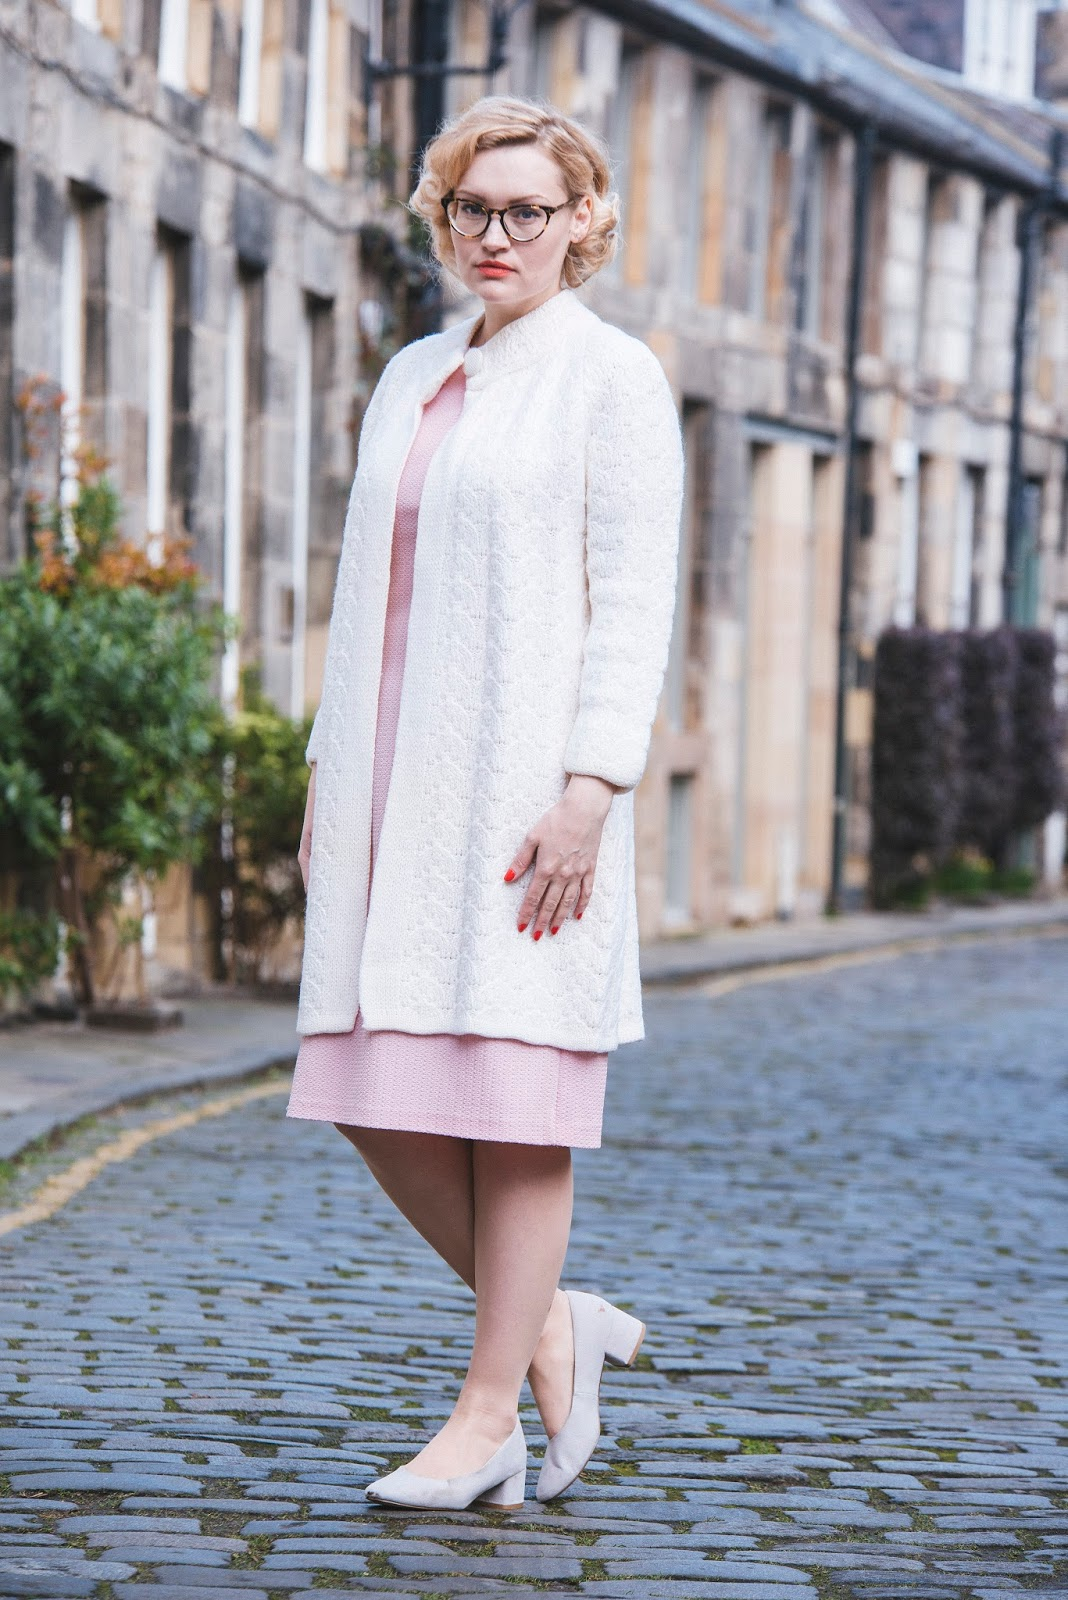 Washington Gwande photography, Fashion blogger wardrobe conversations in vintage 1960s coat and dress in edinburgh, circus lane photoshoot location, thunderbird penelope outfit, pink knit dress, #30wear campaign, caring for vintage clothes, sustainable fashion, ethical fashion, getting wear out of your clothes, thoughtful fashion